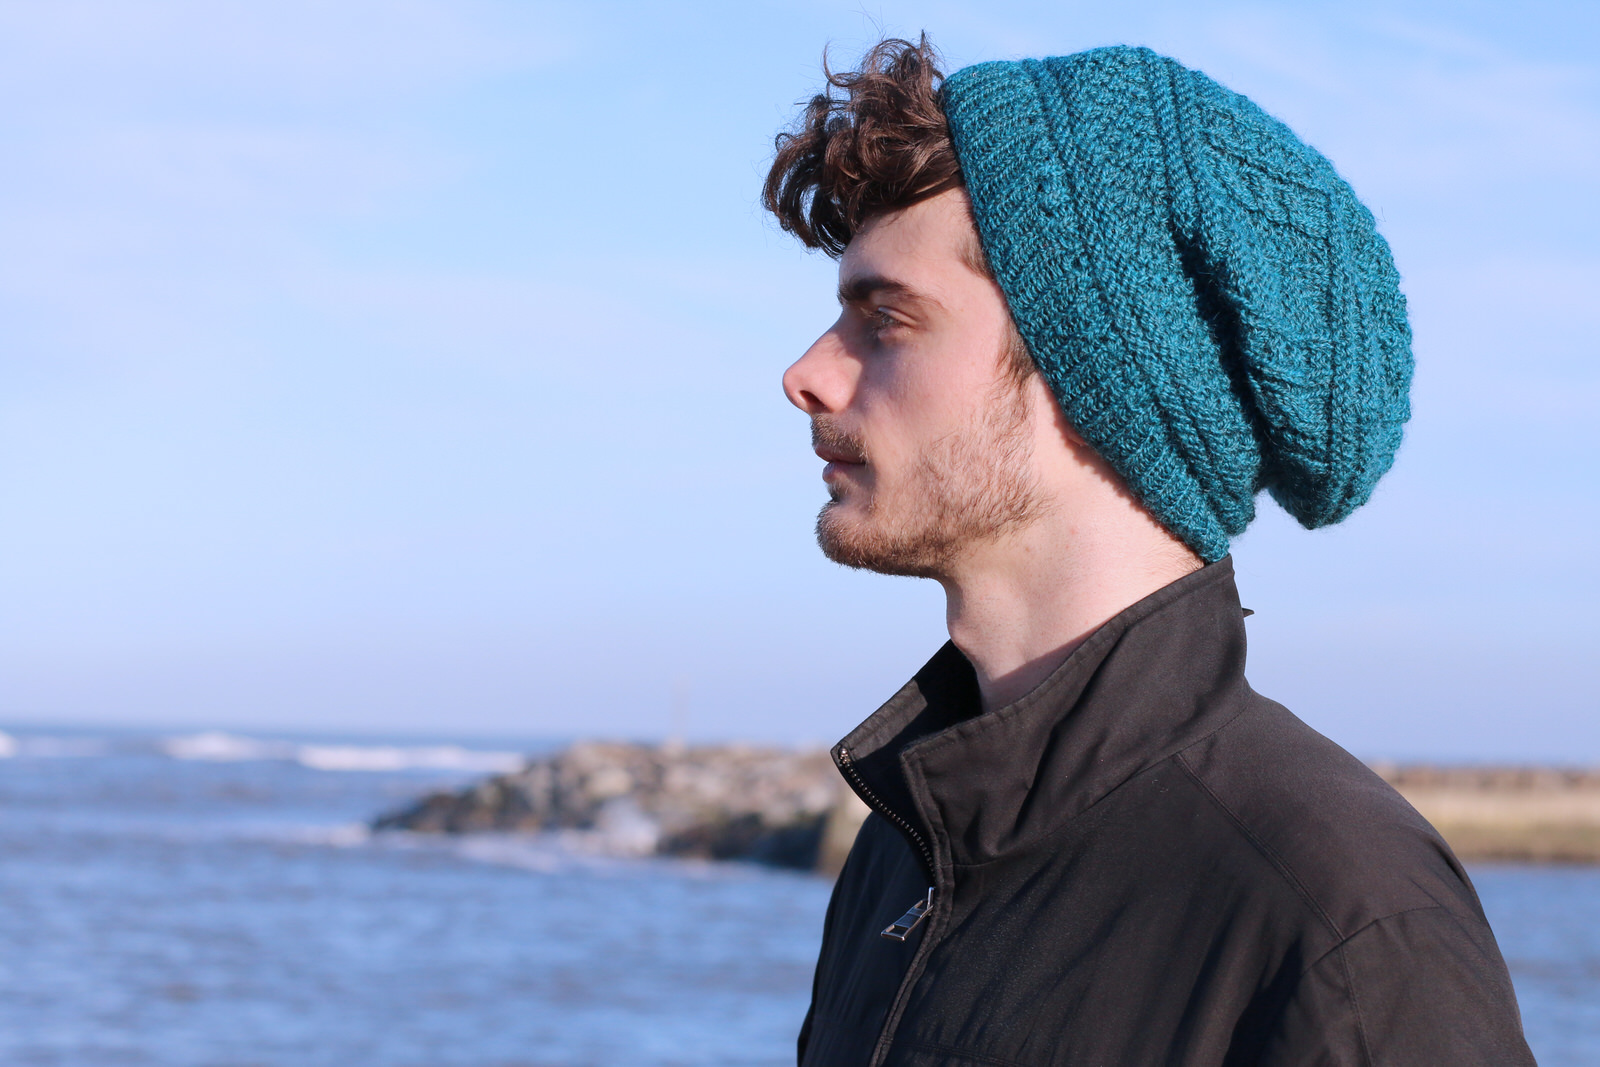 """Ravenscar hat  A sampler hat using a combination of classic gansey motifs  Yarn: Dovestone DK (252 yds / 230m in 100g)  Yarn Quantities: 252 yards (230 m)  Needles:  3.5mm x 40cm circular, 4mm x 40cm circular and DPNs  Notions:  6 stitch markers, cable needle  Sizes: To fit head: 46 (51, 56)cm/18 (20, 22)"""""""